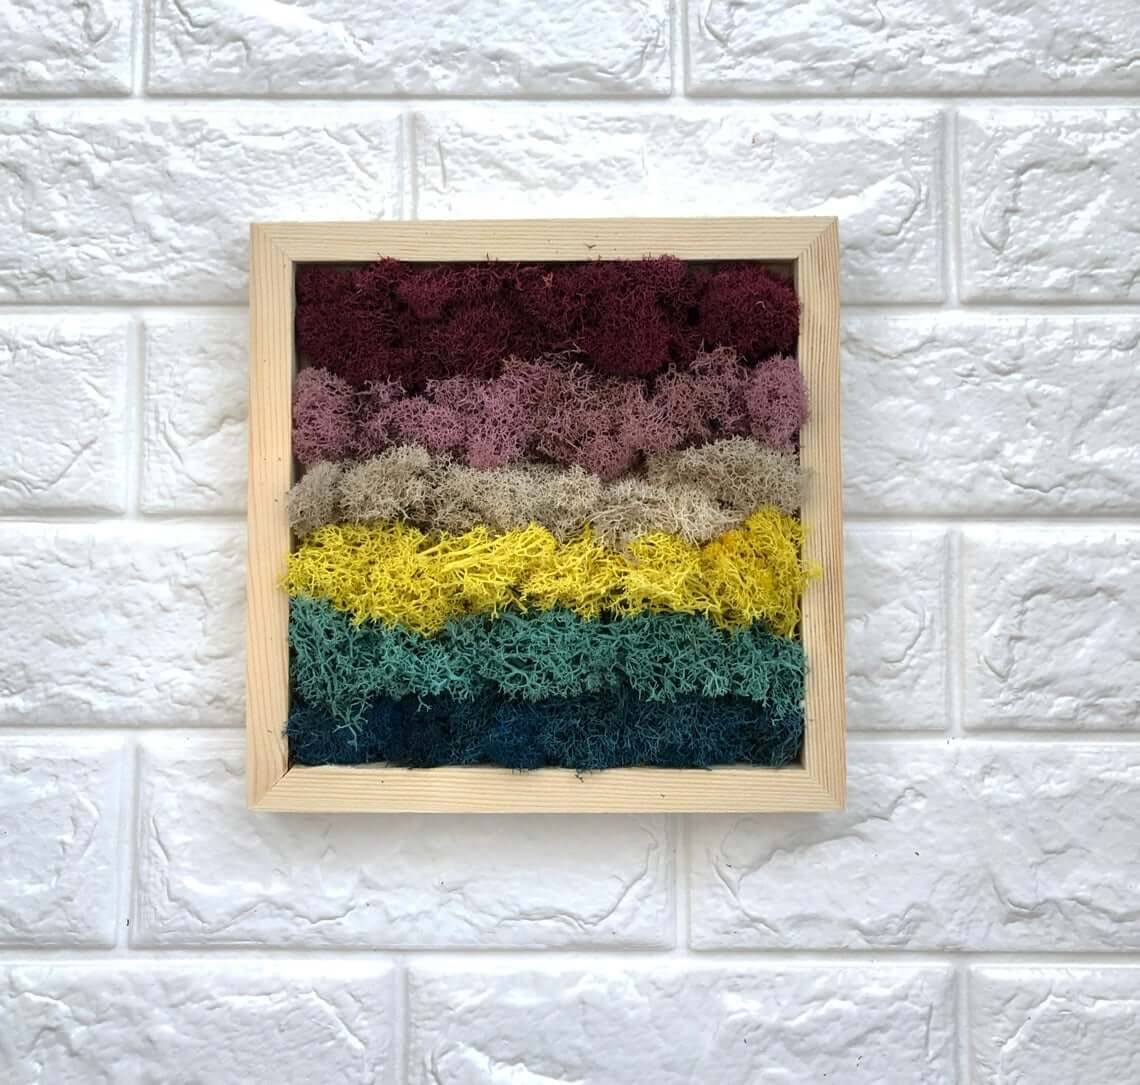 Colorful Dried Moss Art Frame